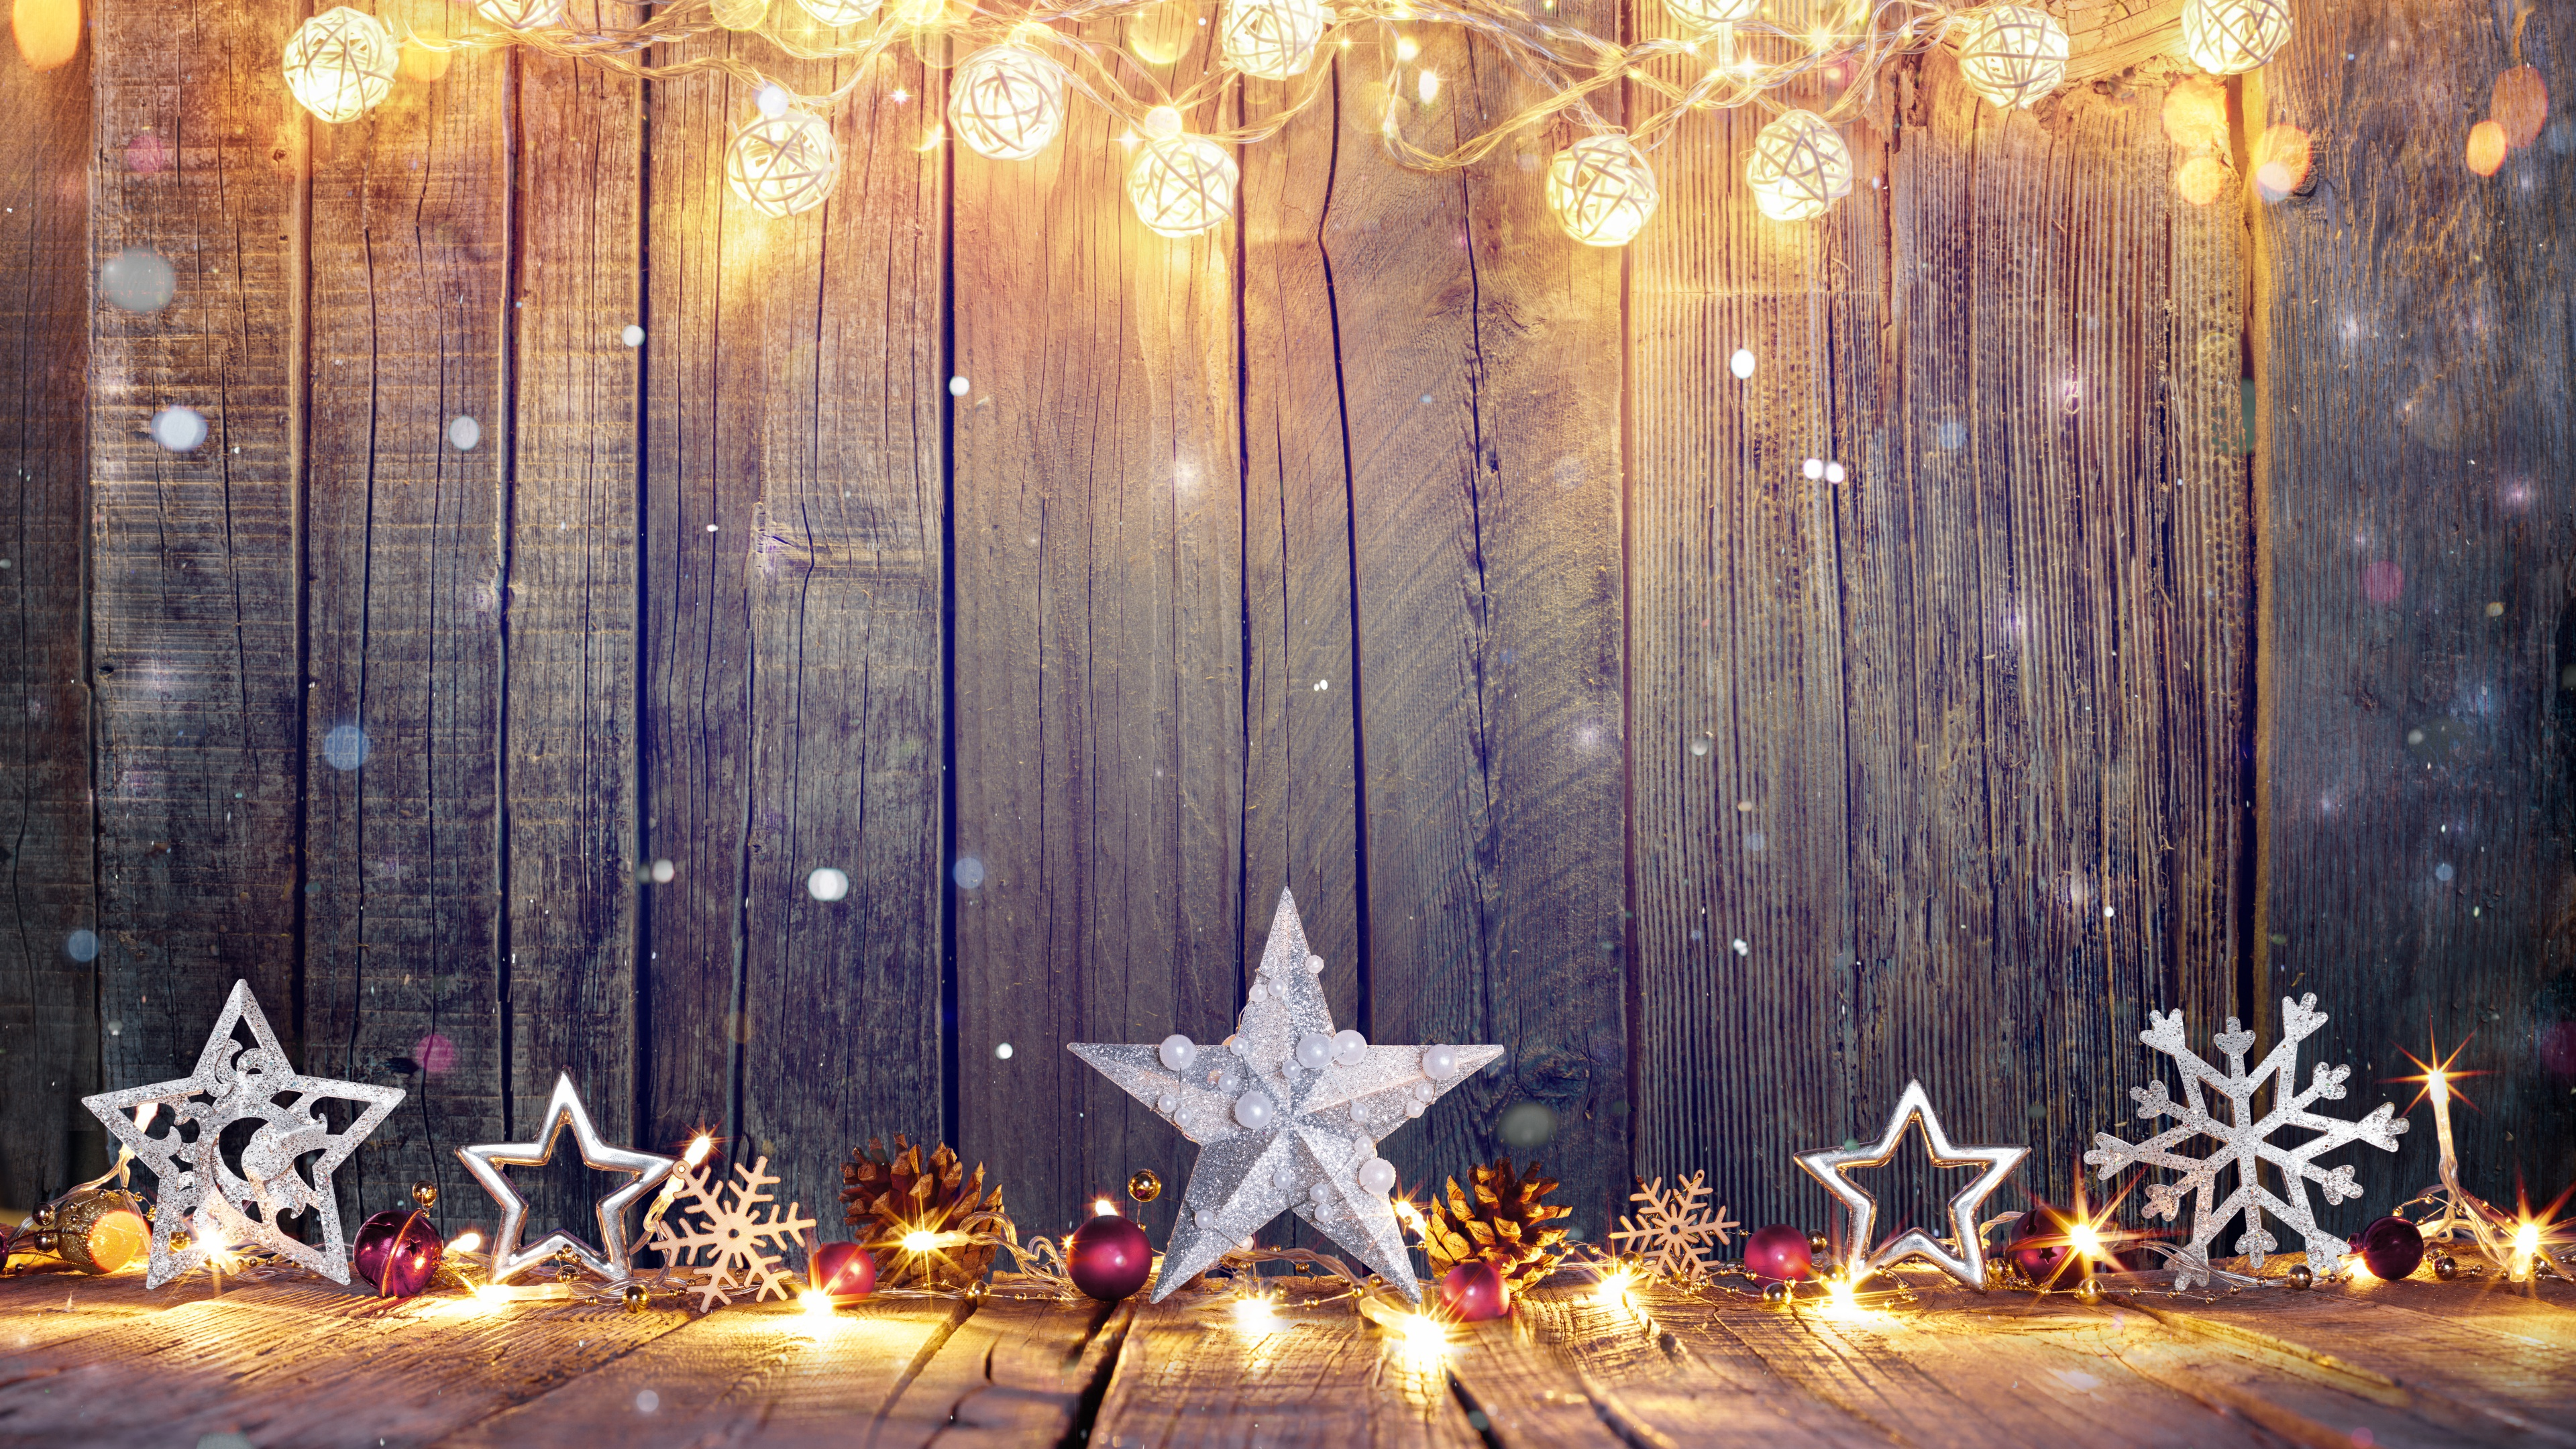 4k christmas star 1543946335 - 4k Christmas star - holidays wallpapers, hd-wallpapers, christmas wallpapers, celebrations wallpapers, 4k-wallpapers